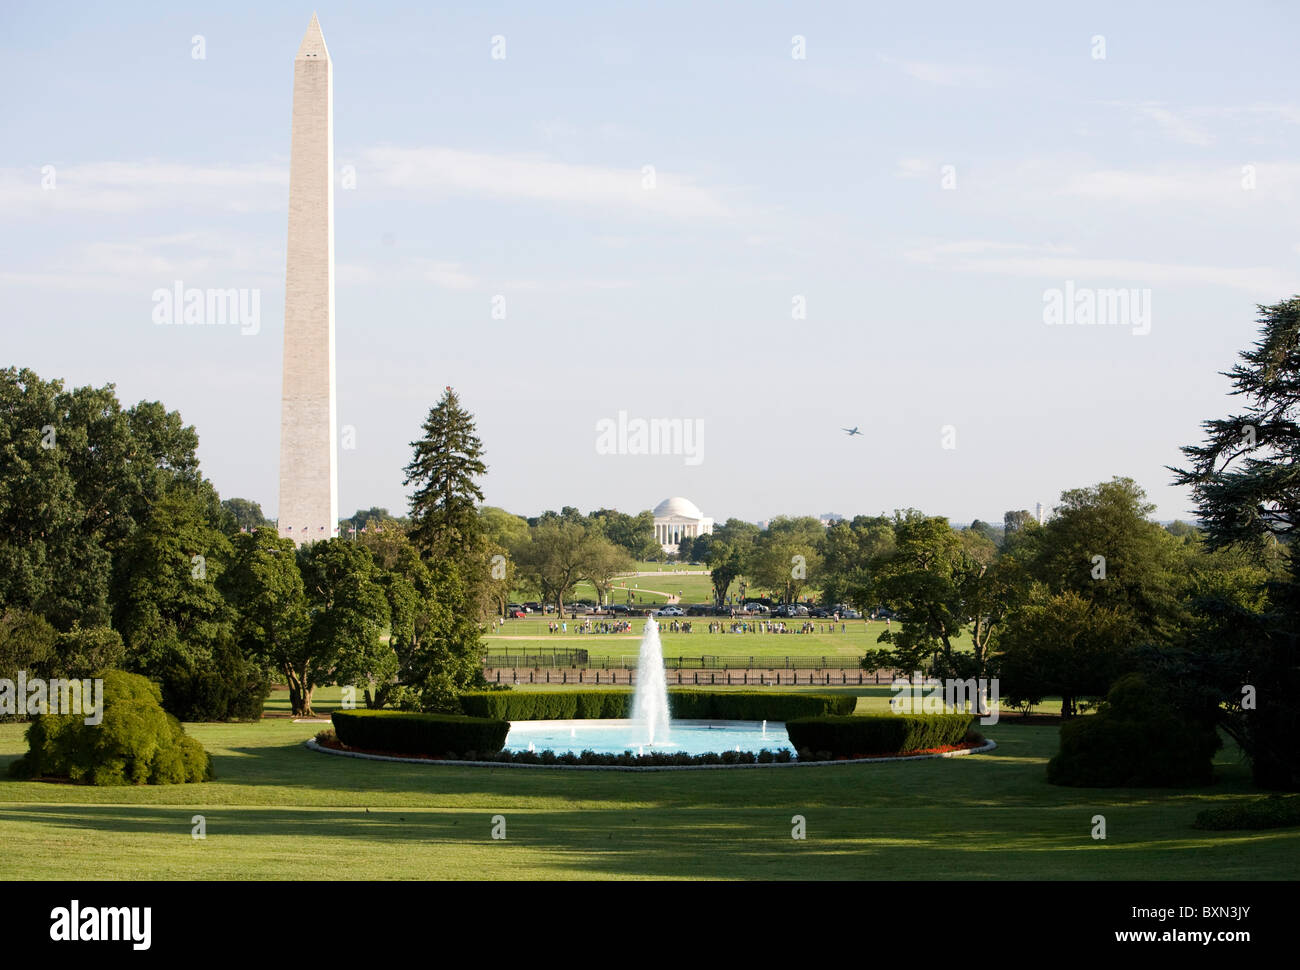 A view of the Washington Monument from the South Lawn of the White House. - Stock Image